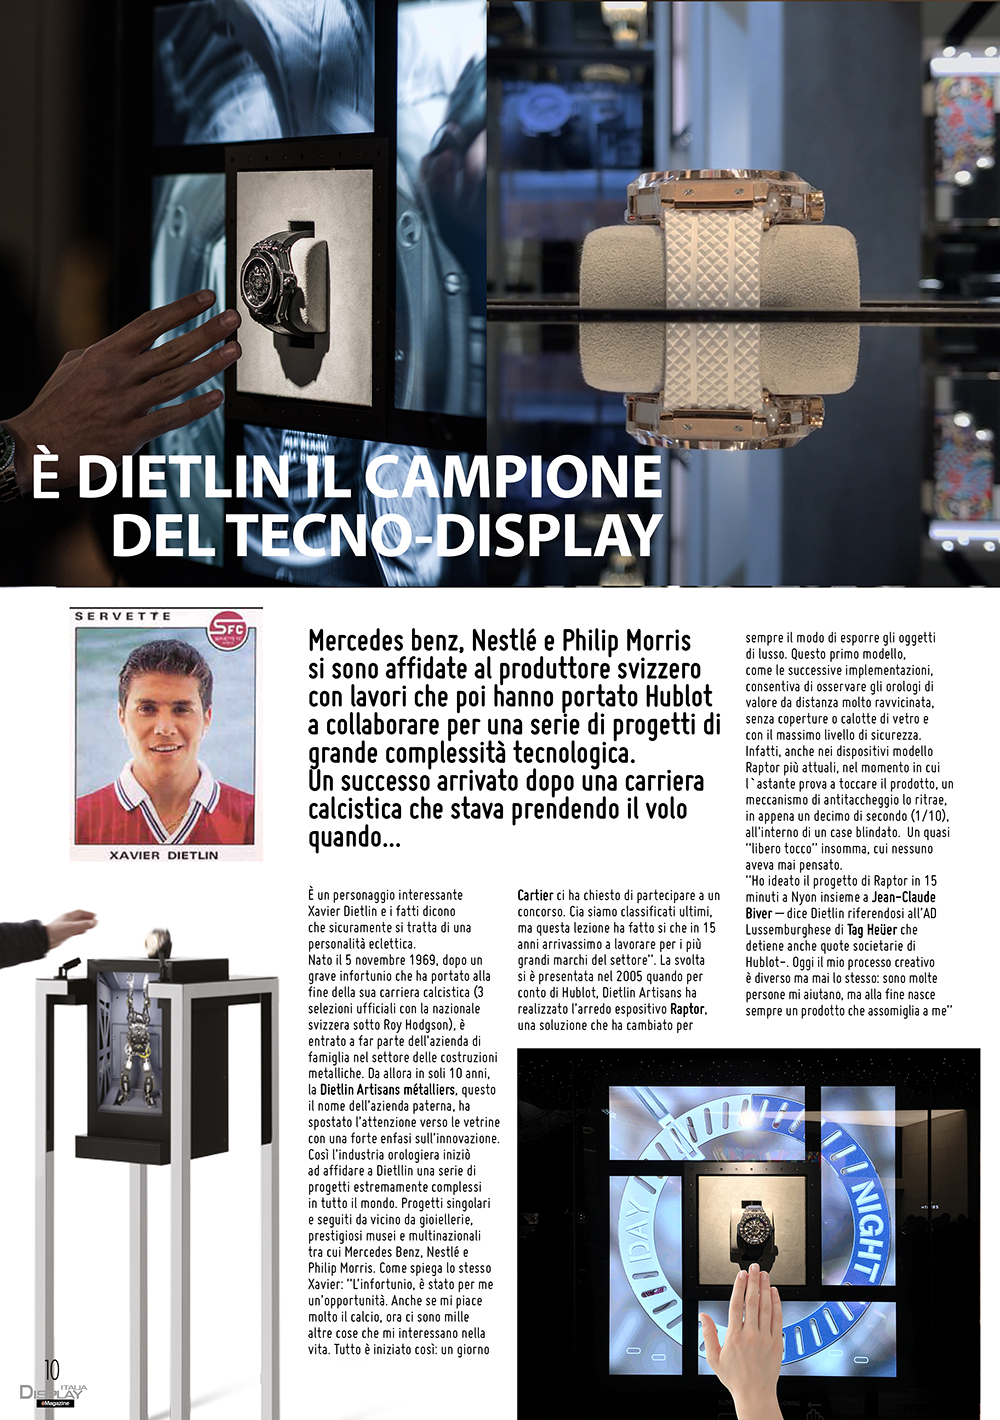 Display Italia : È Dietlin il campione del tecno-display.